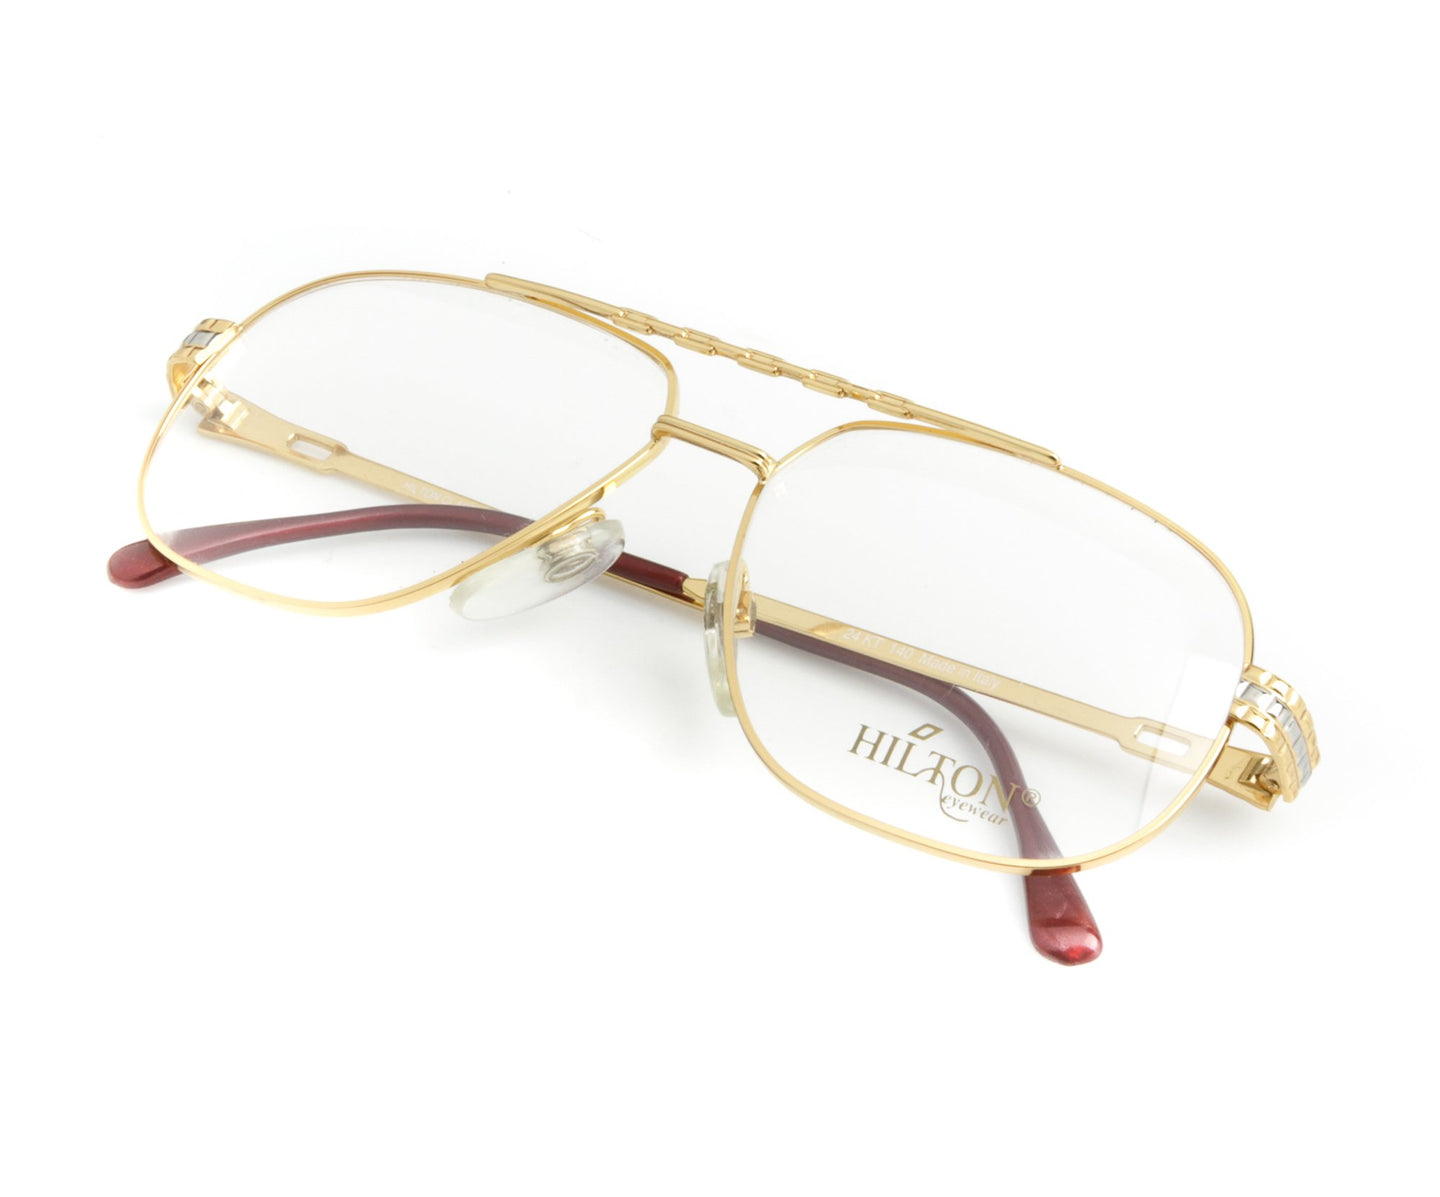 Vintage Hilton Class 703 1 24KT Thumb, Hilton , glasses frames, eyeglasses online, eyeglass frames, mens glasses, womens glasses, buy glasses online, designer eyeglasses, vintage sunglasses, retro sunglasses, vintage glasses, sunglass, eyeglass, glasses, lens, vintage frames company, vf